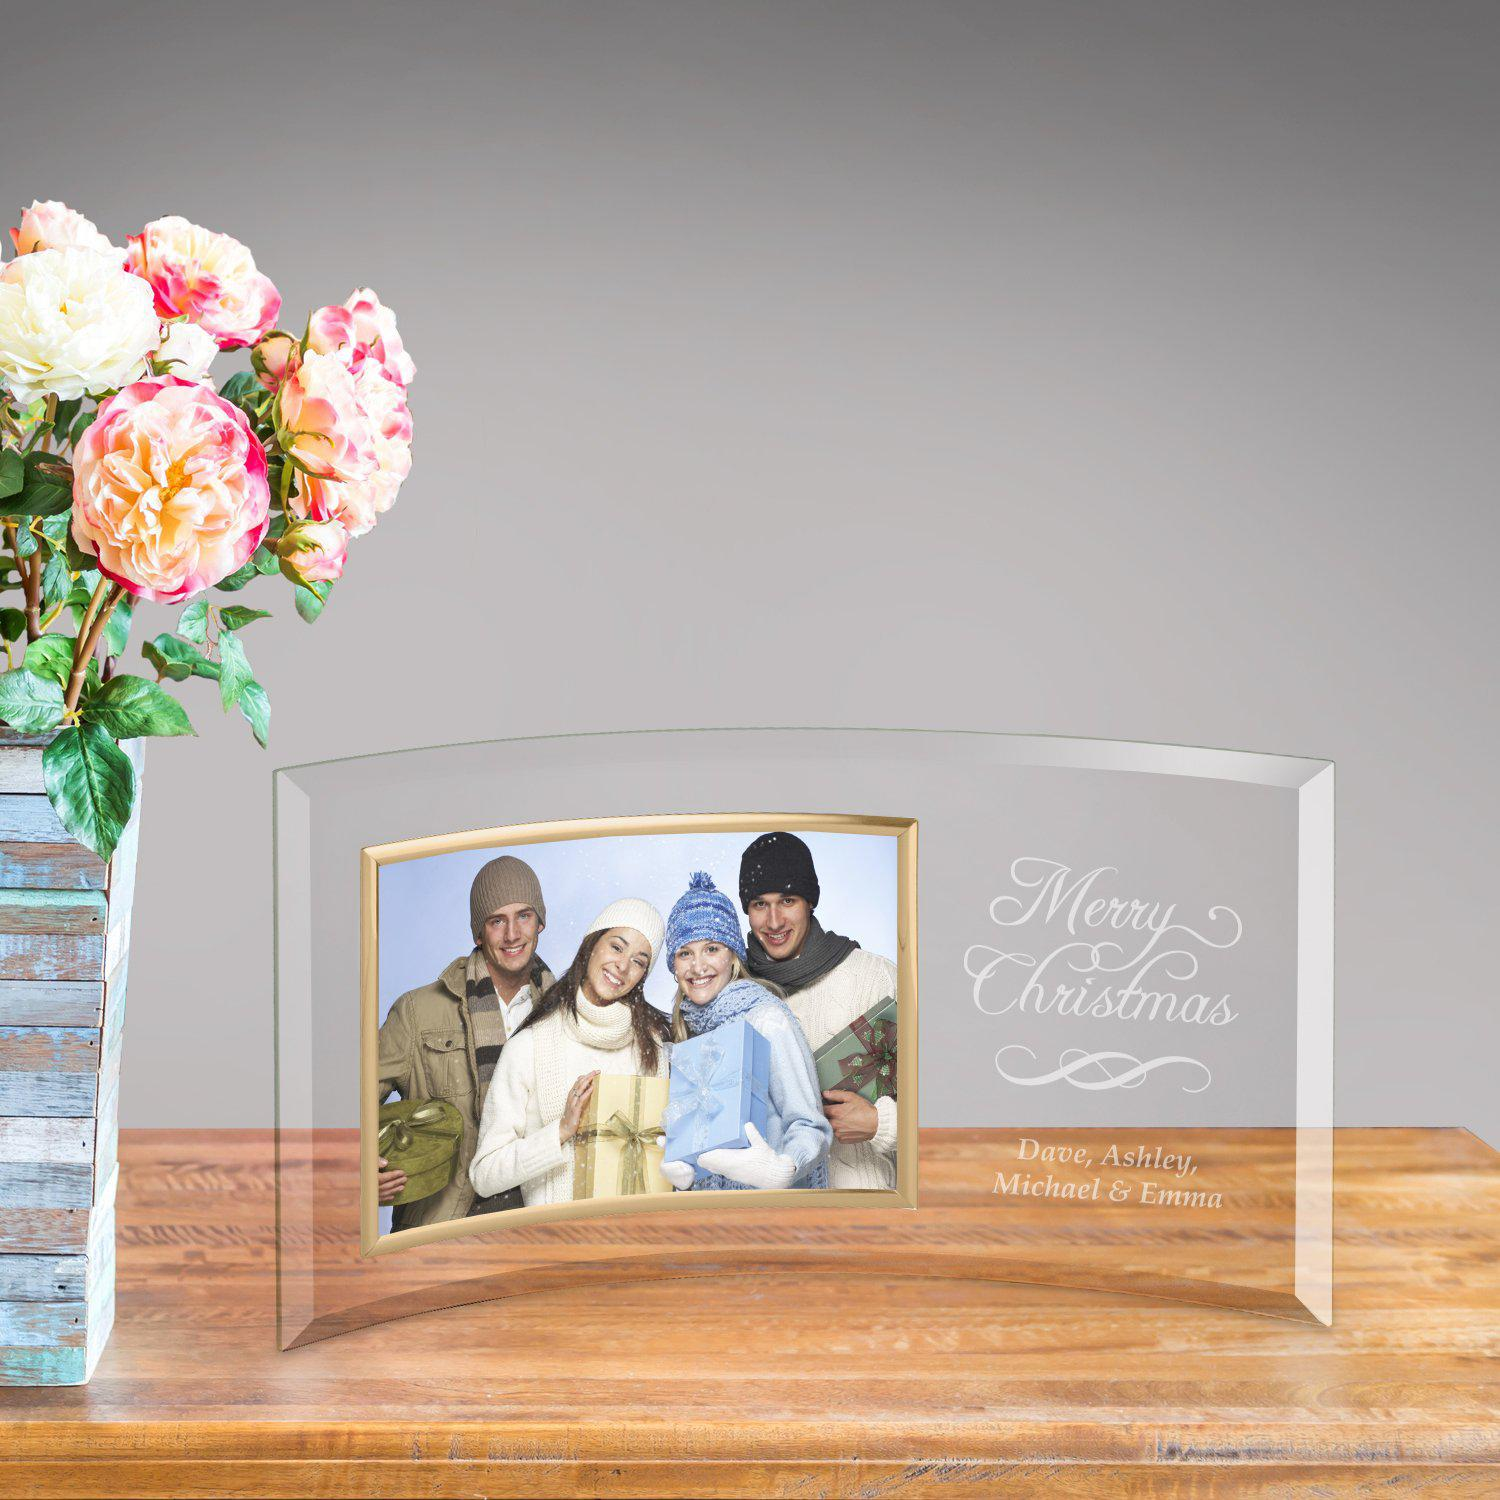 Personalized Glass Picture Frame - Merry Christmas